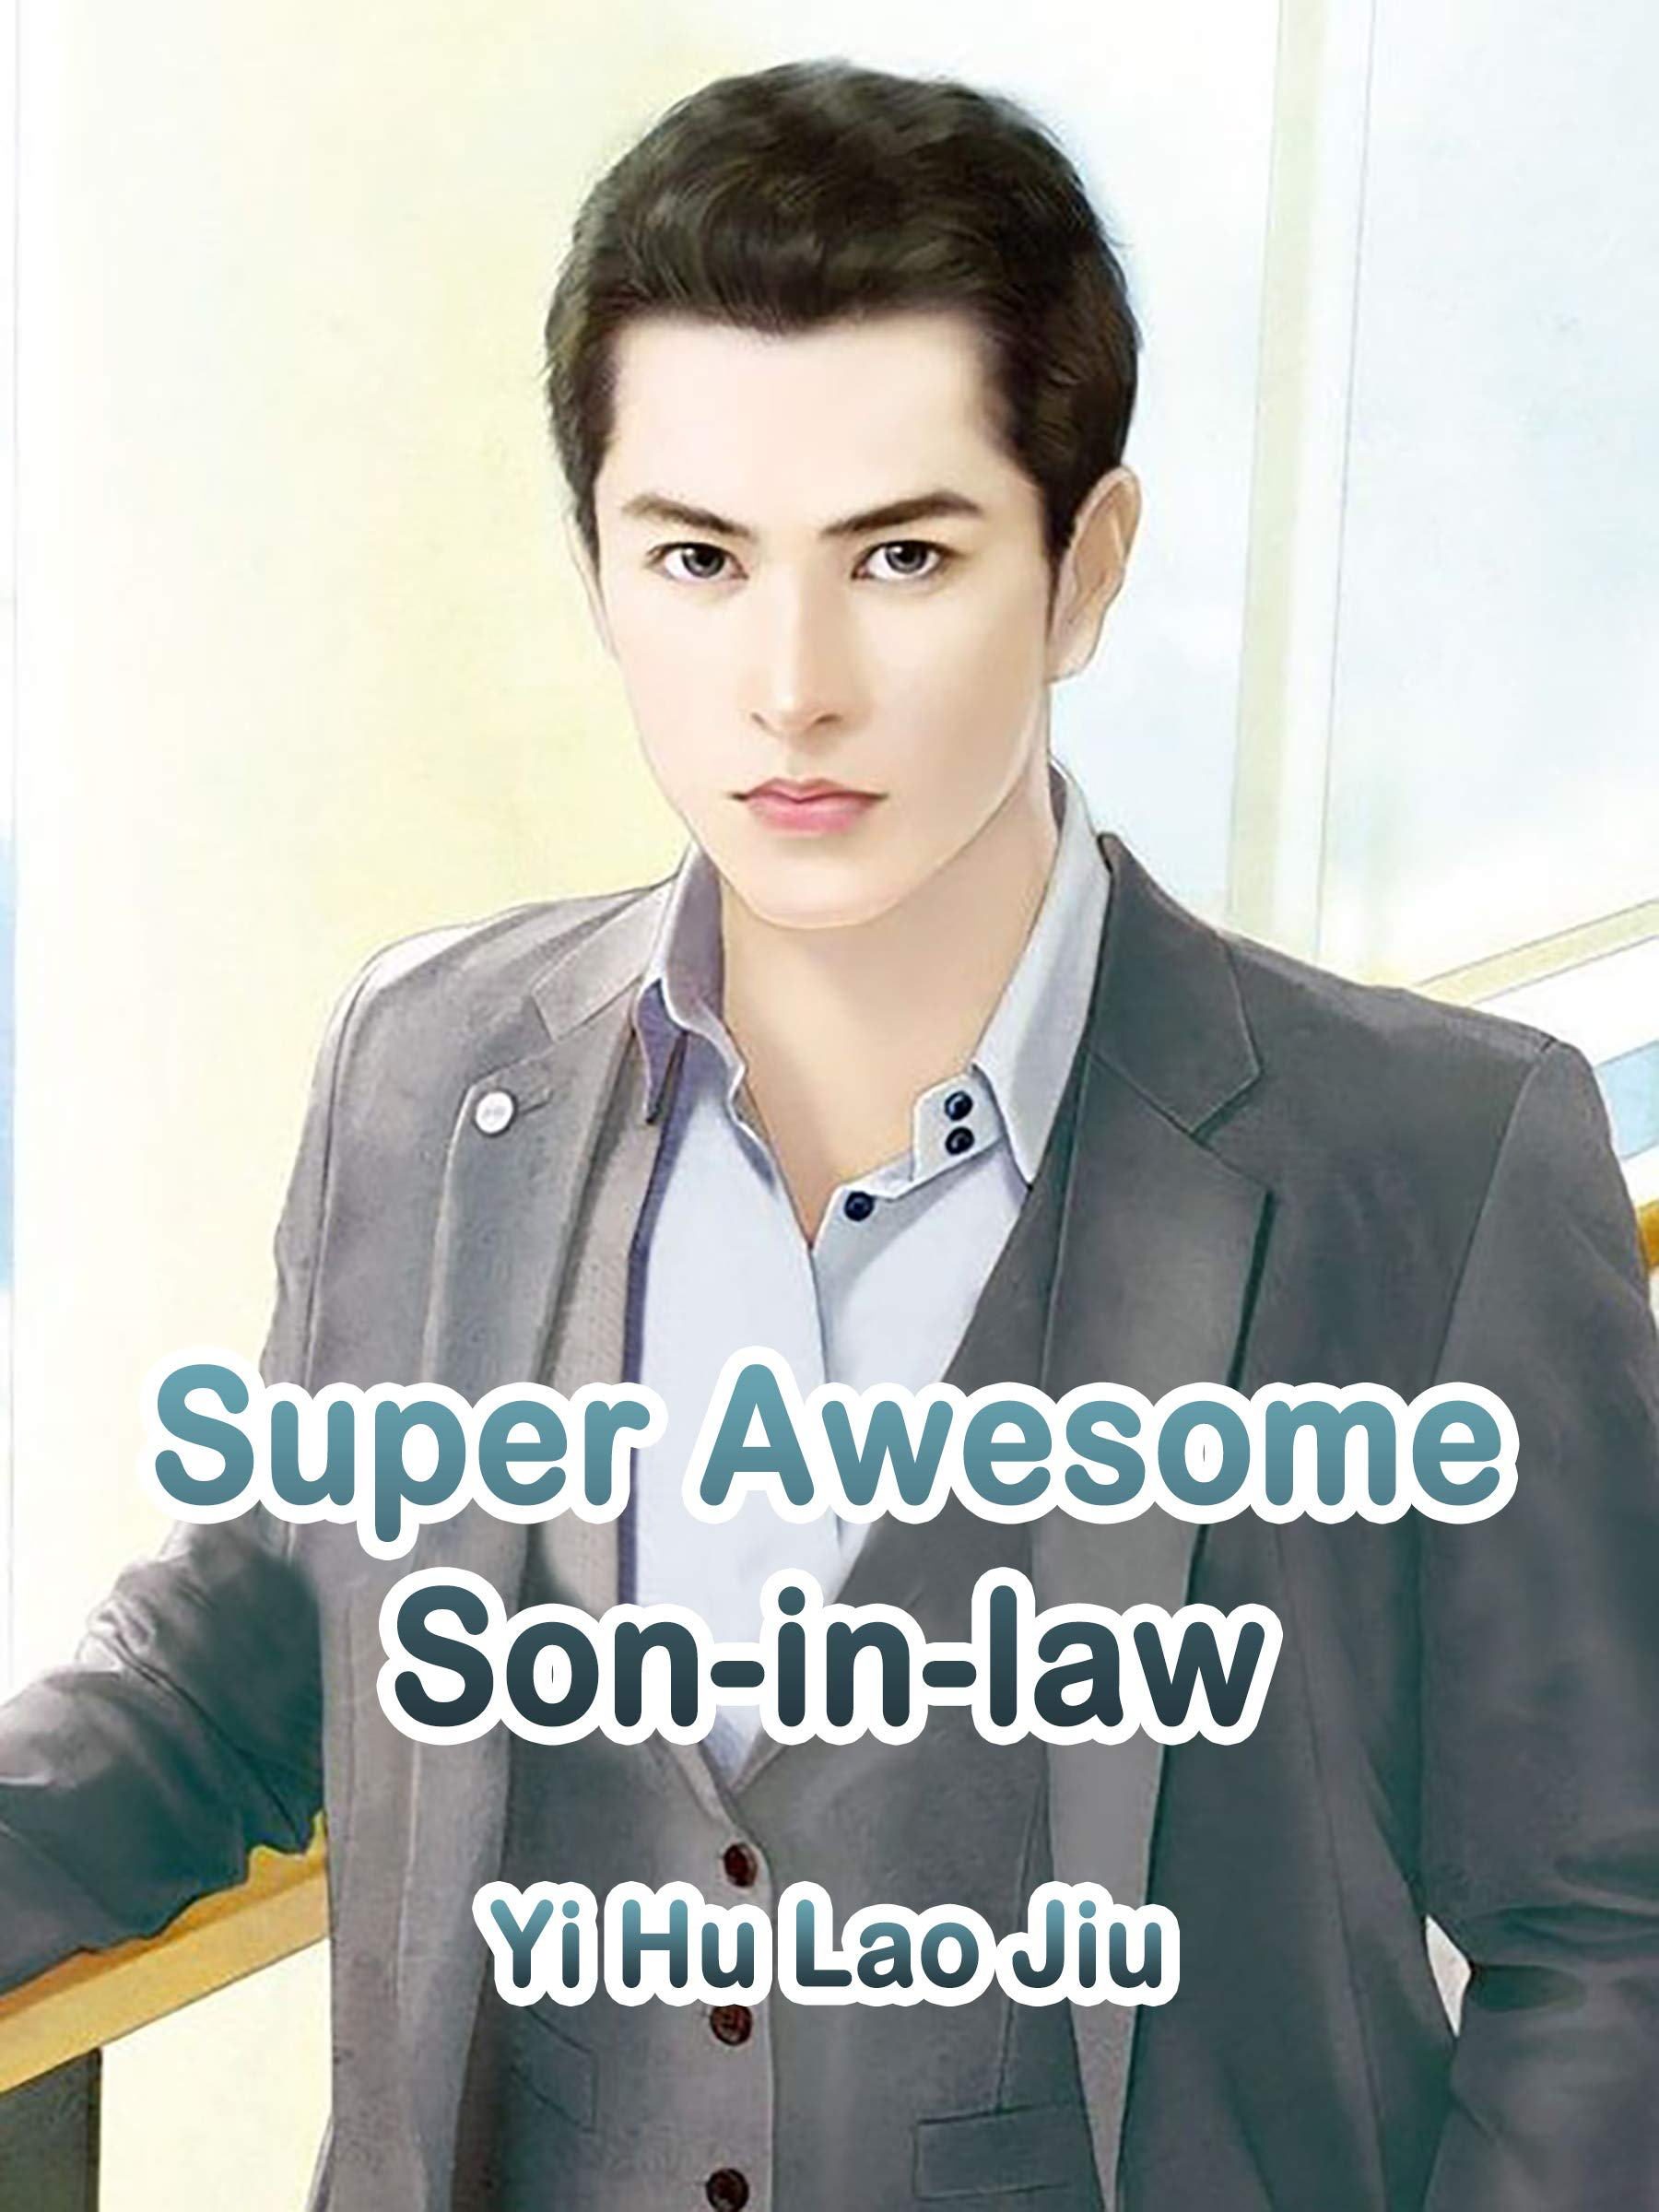 Super Awesome Son-in-law: Volume 3